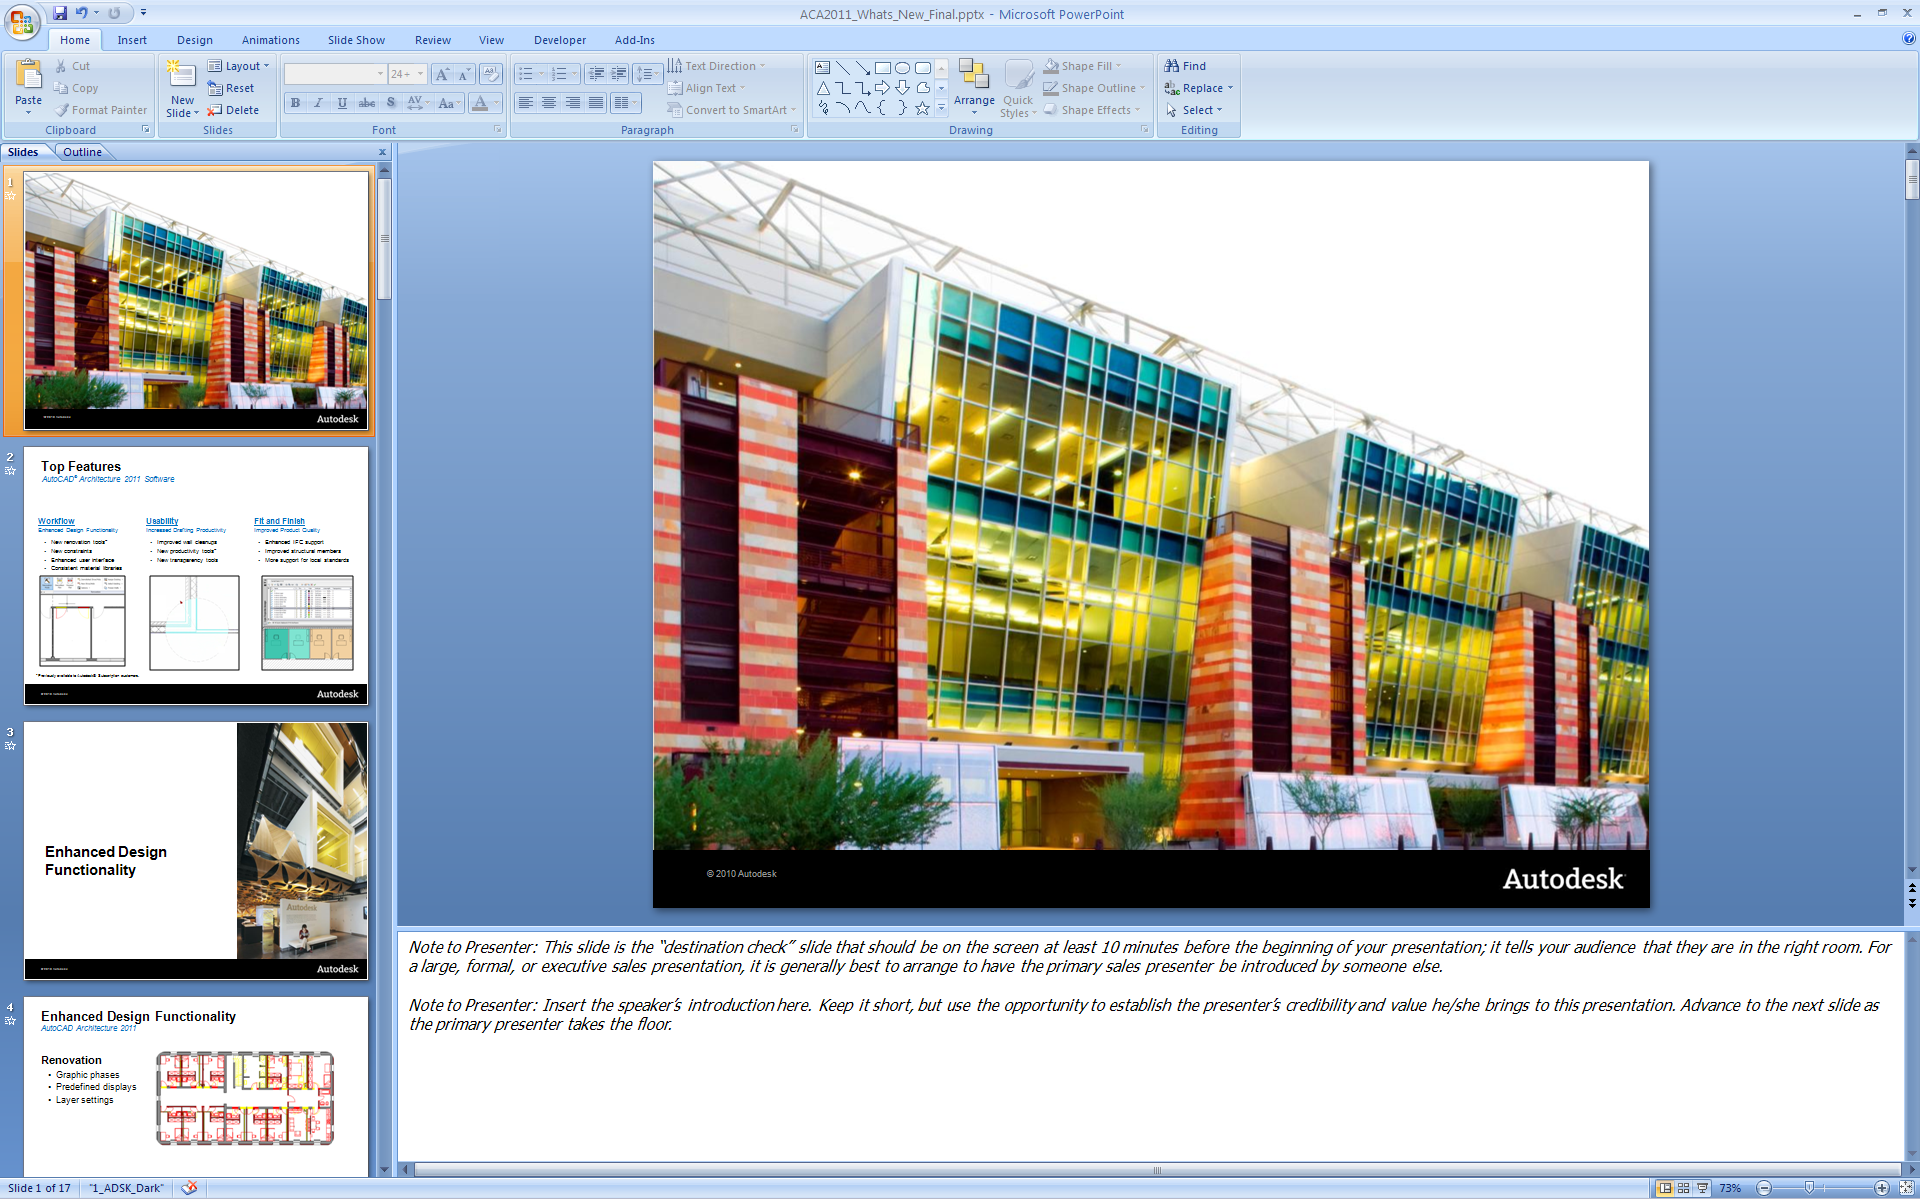 autocad architect 2012 image search results autocad ...